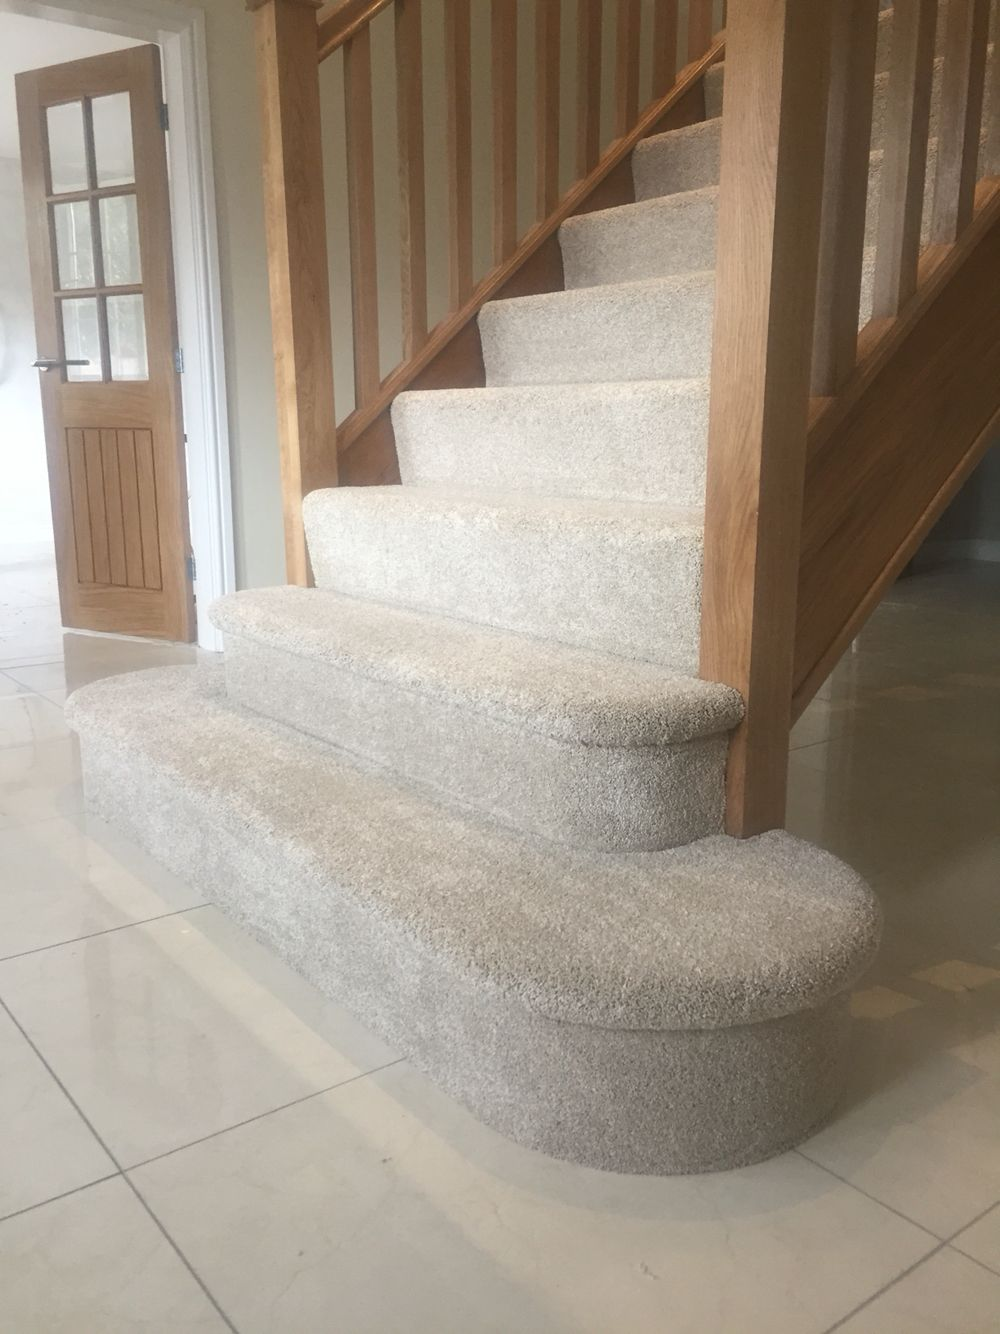 Sink Your Toes Into Lush Carpet Expertly Fitted On A Bullnose Staircase Carpet Stairs Carpet Staircase Glass Staircase